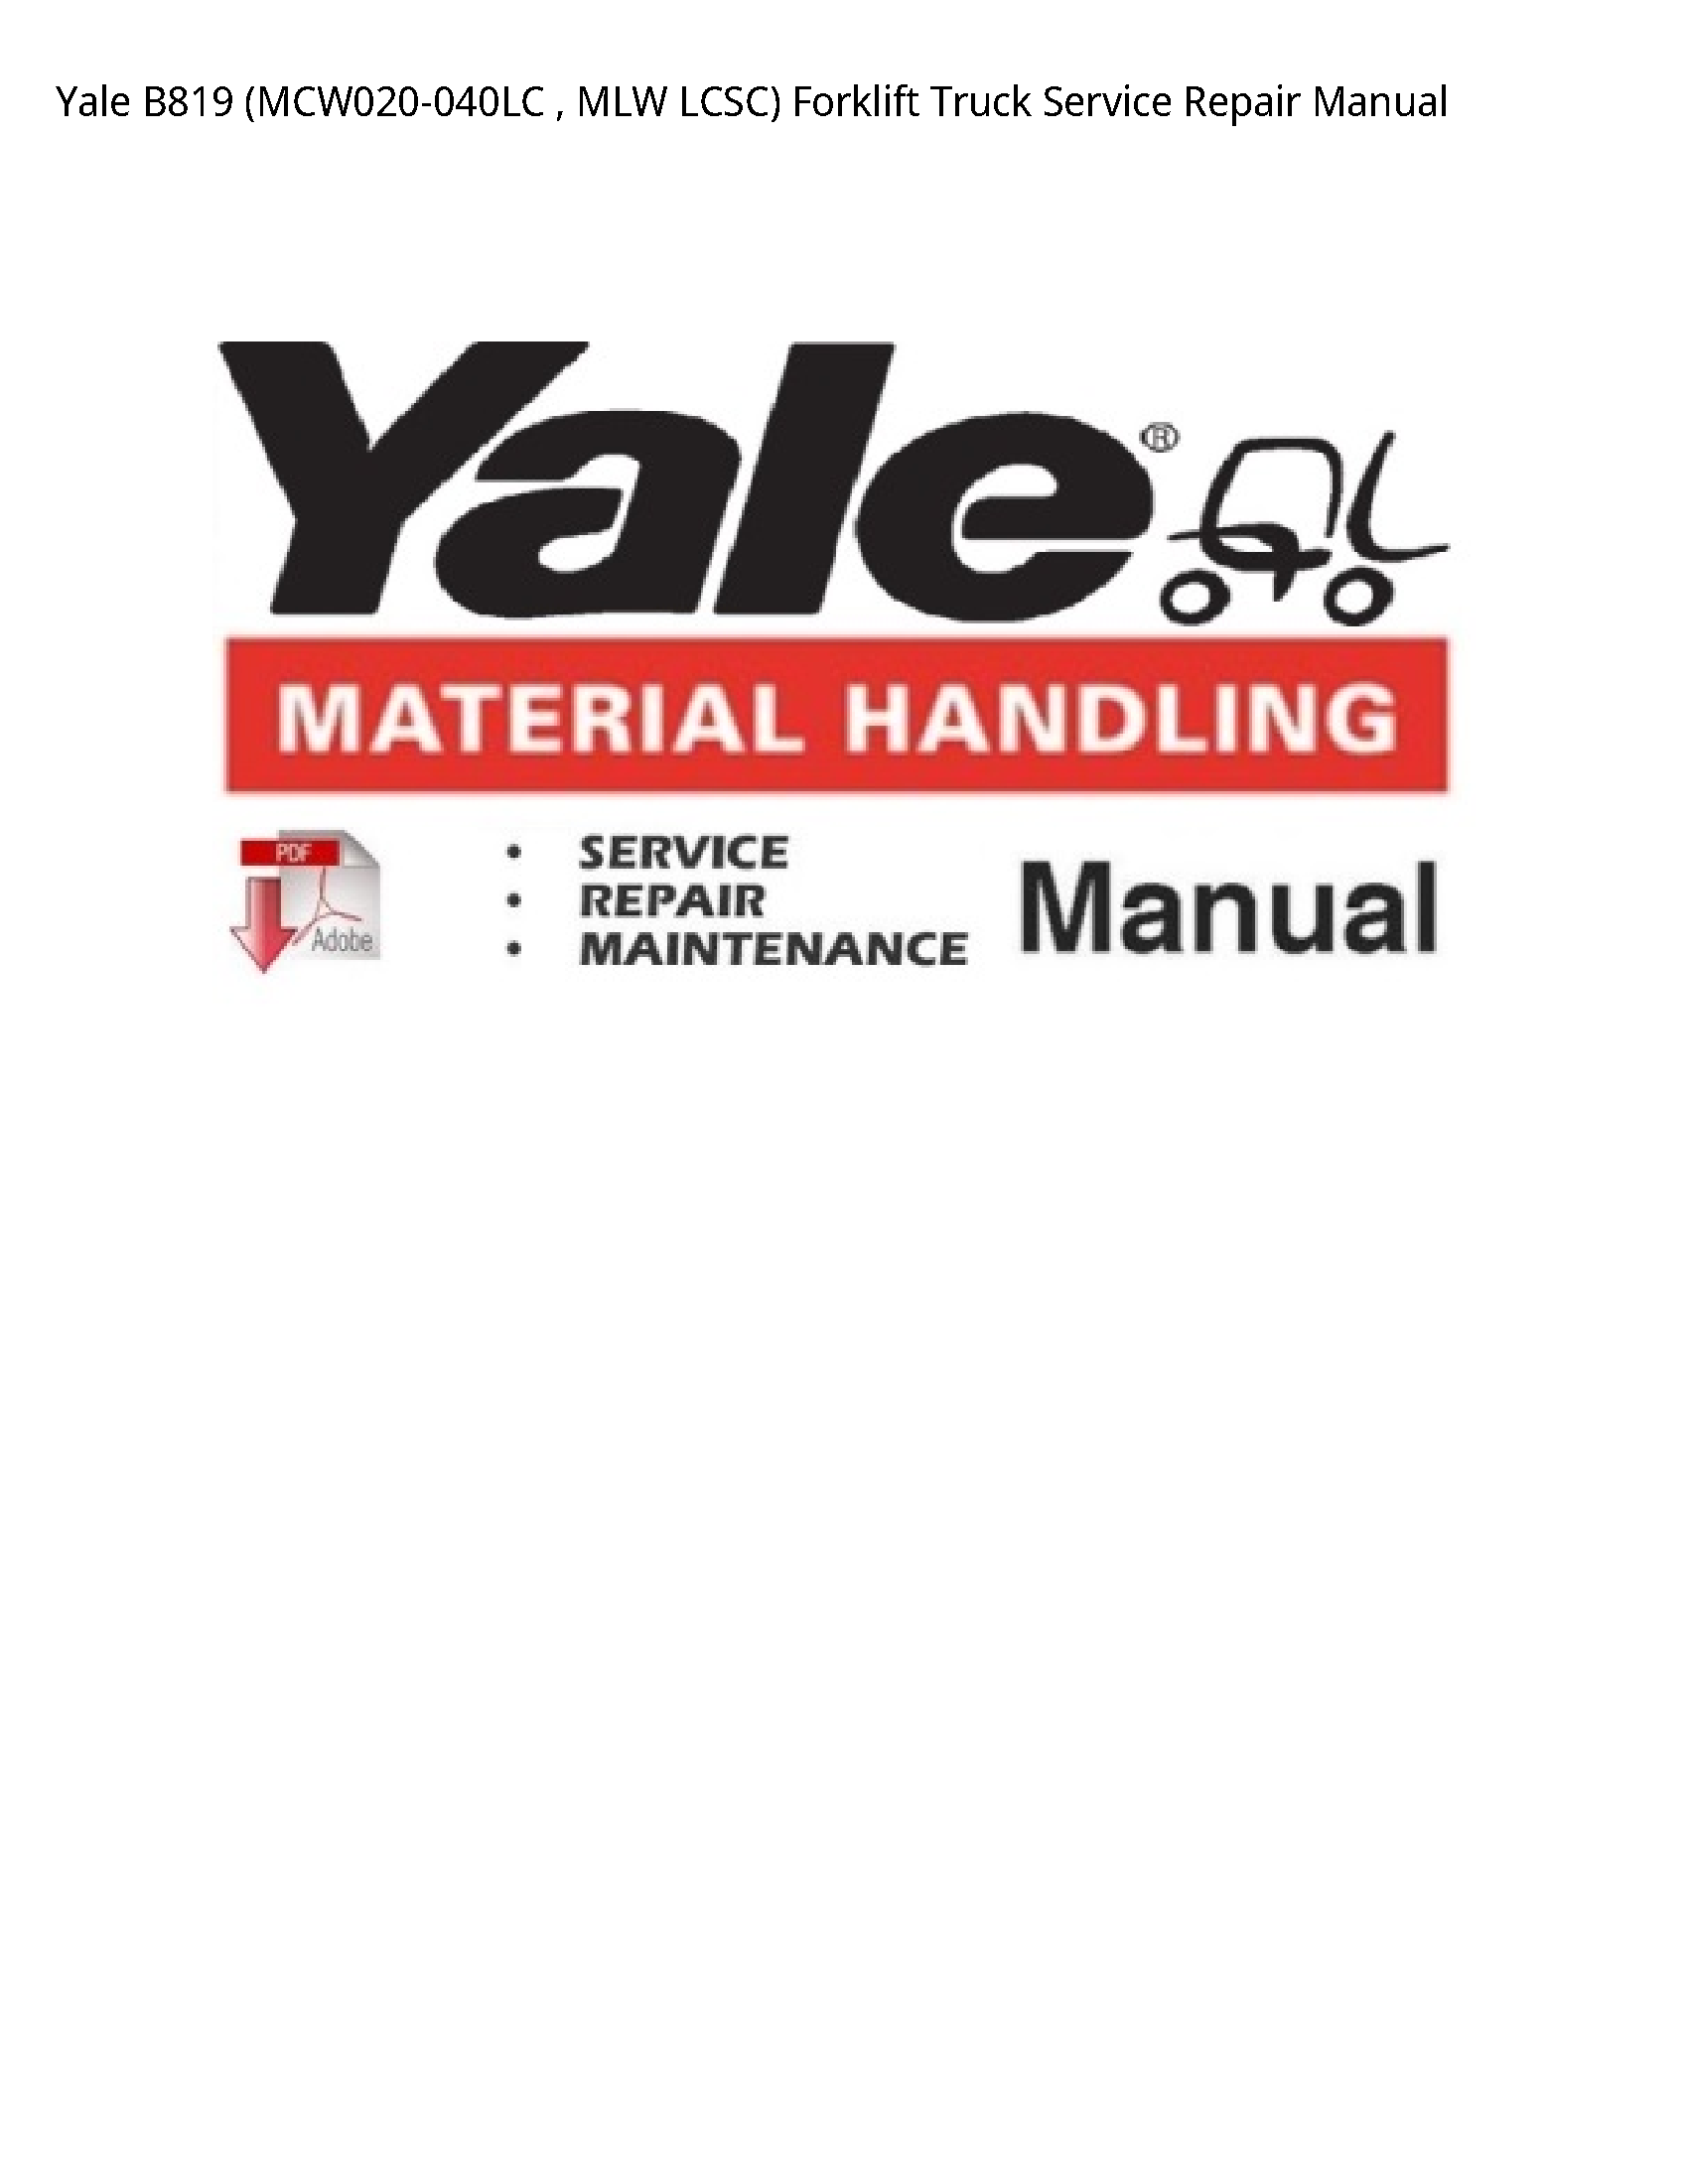 Yale B819 MLW LCSC) Forklift Truck manual